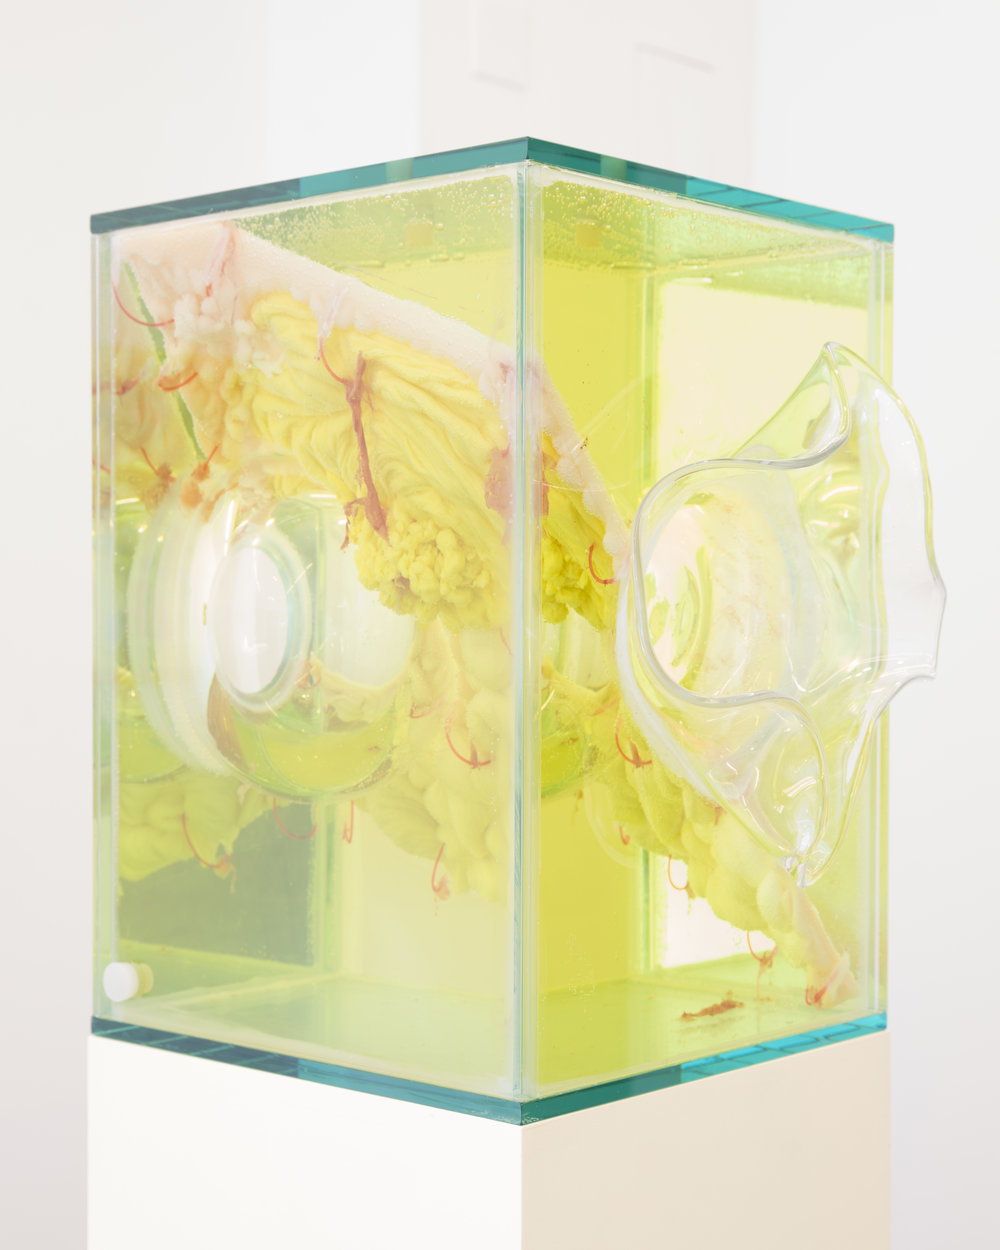 Jennifer Sirey  Swiile  2019 Glass, bacteria, vinegar, water, monofilament, wax, food coloring, MDF, and paint 62 1/2 x 11 x 11 1/2 inches